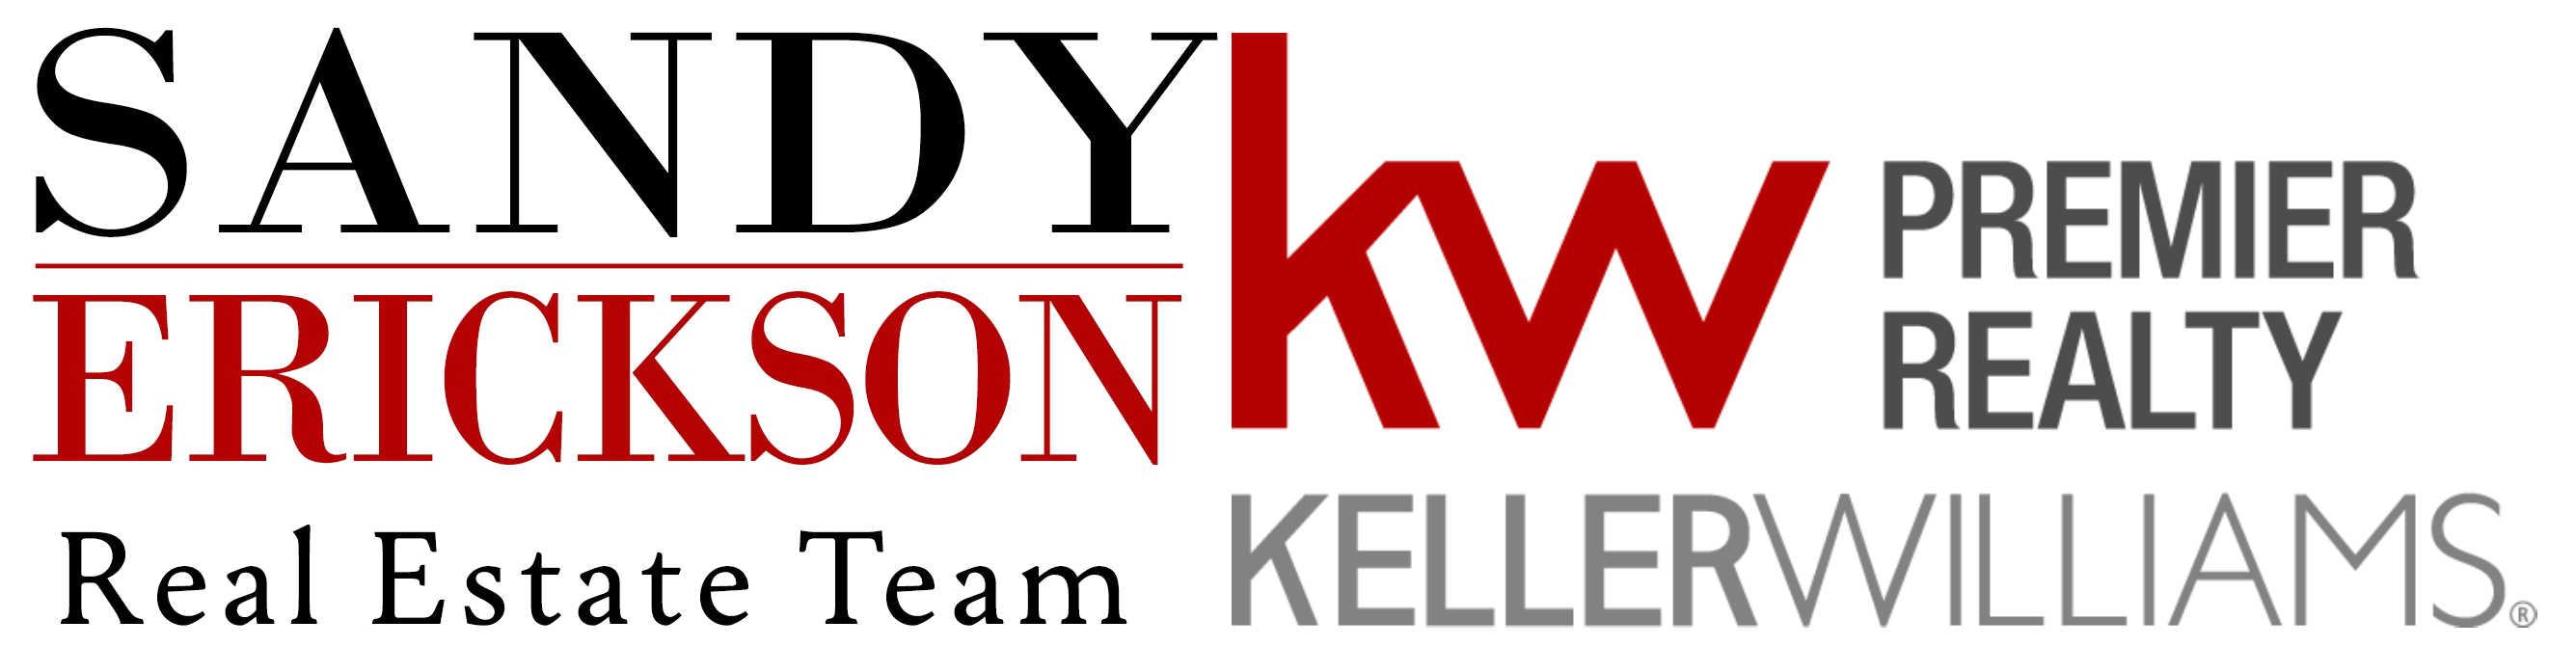 Sandy Erickson Team, Keller Williams Premier Realty logo